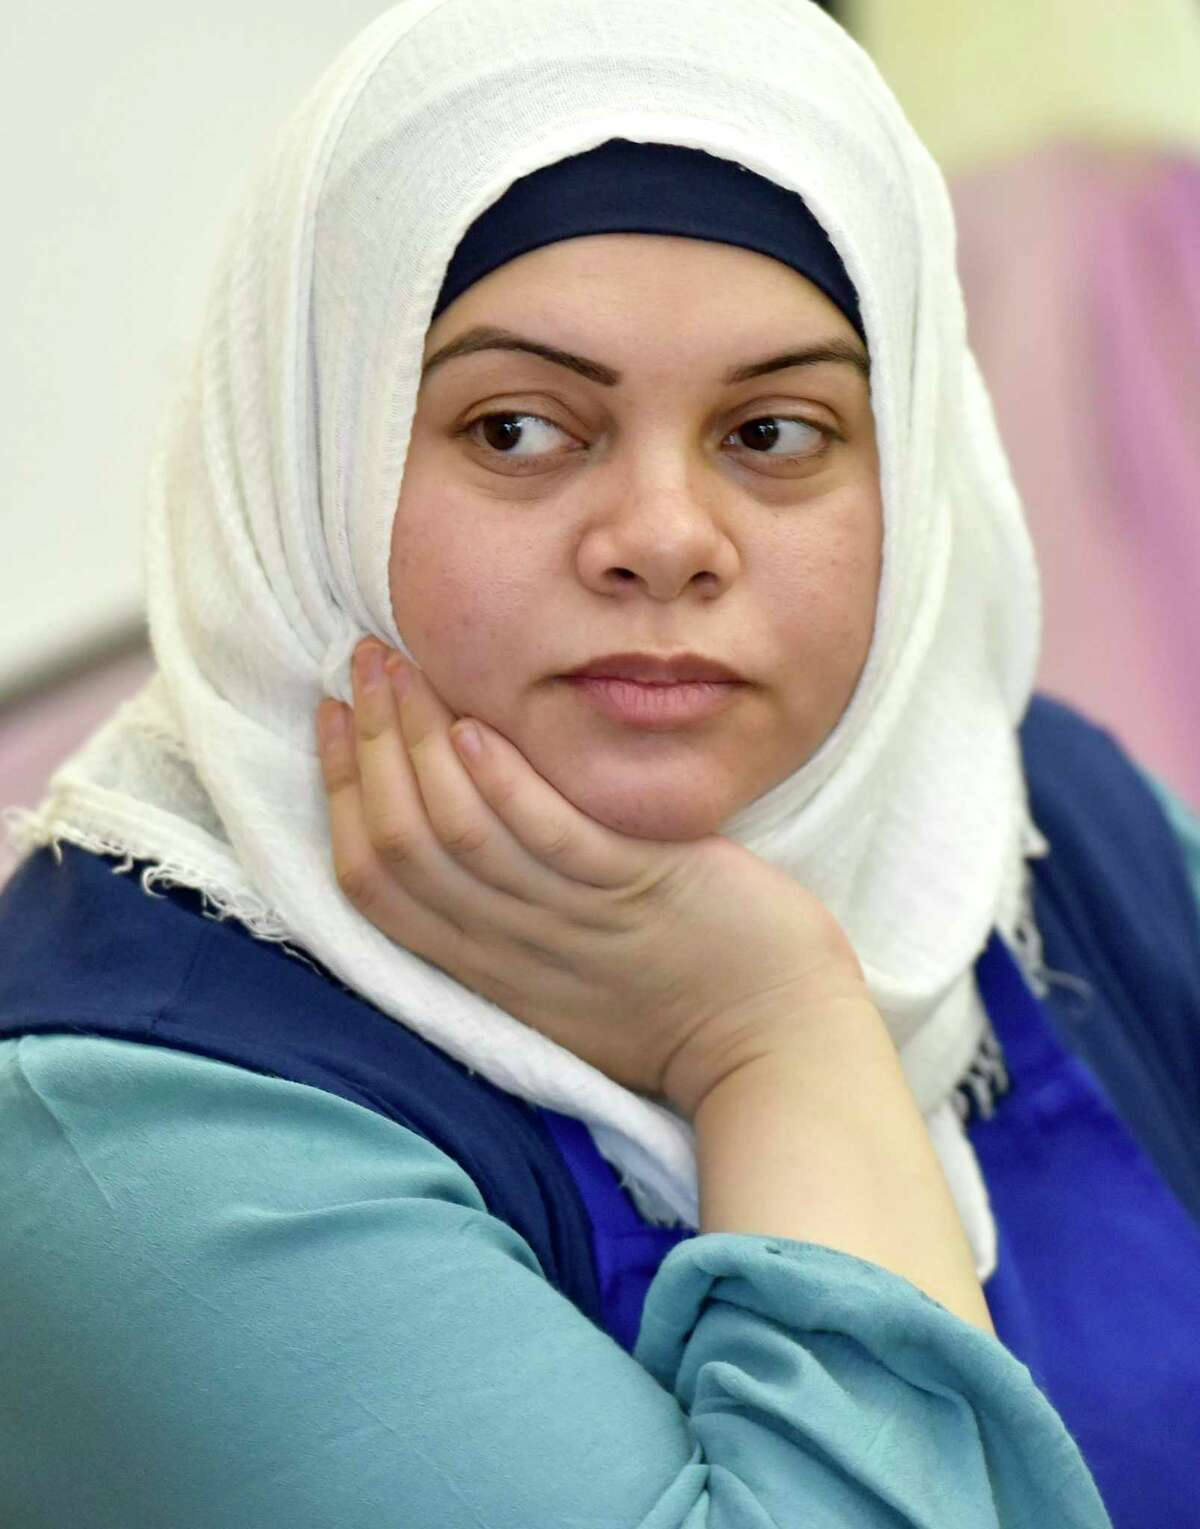 Sanctuary Kitchen at City Seed Chef Safaa Yousif, 30, shown in this photo taken Oct. 9, is a refugee from Hama Syria. In 2013 she fled to Turkey with her husband and daughter. After 3-years in Turkey, she resettled in New Haven.